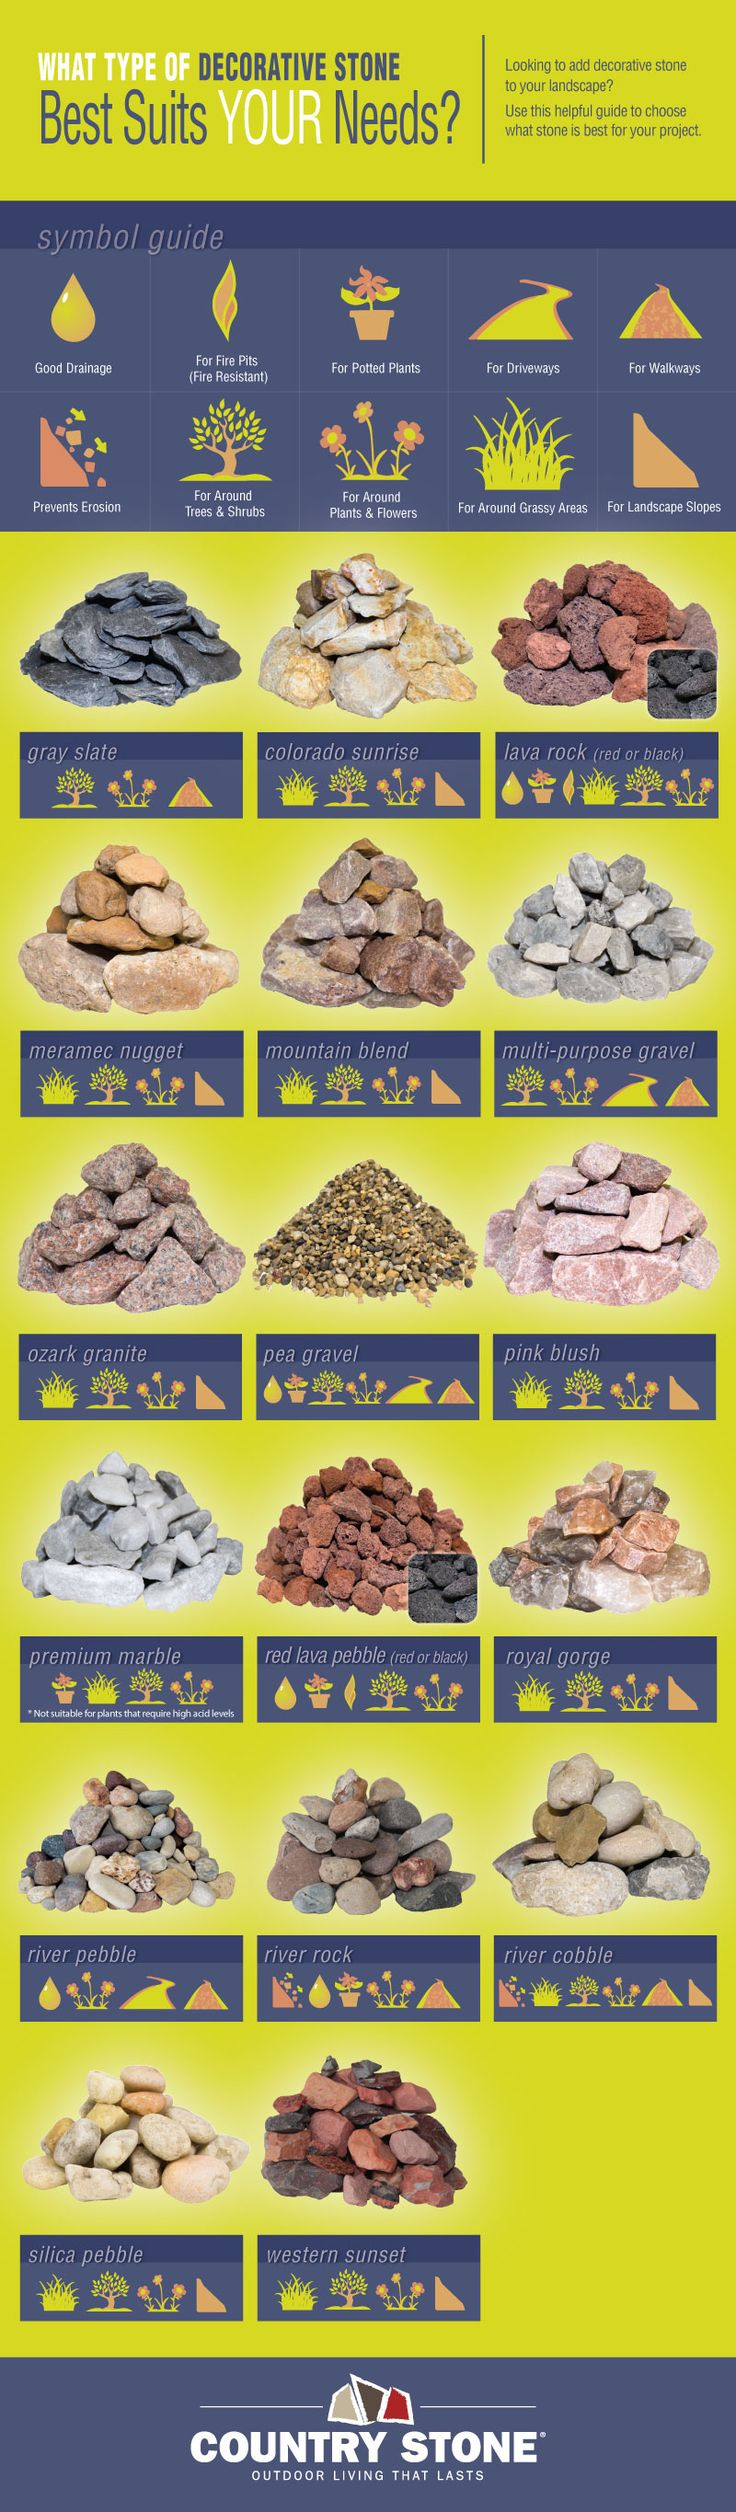 Looking to add decorative stone to your landscape? Use this helpful guide to choose what stone is best for your next project. #landscapingstone #infographic #rocks #landscaping